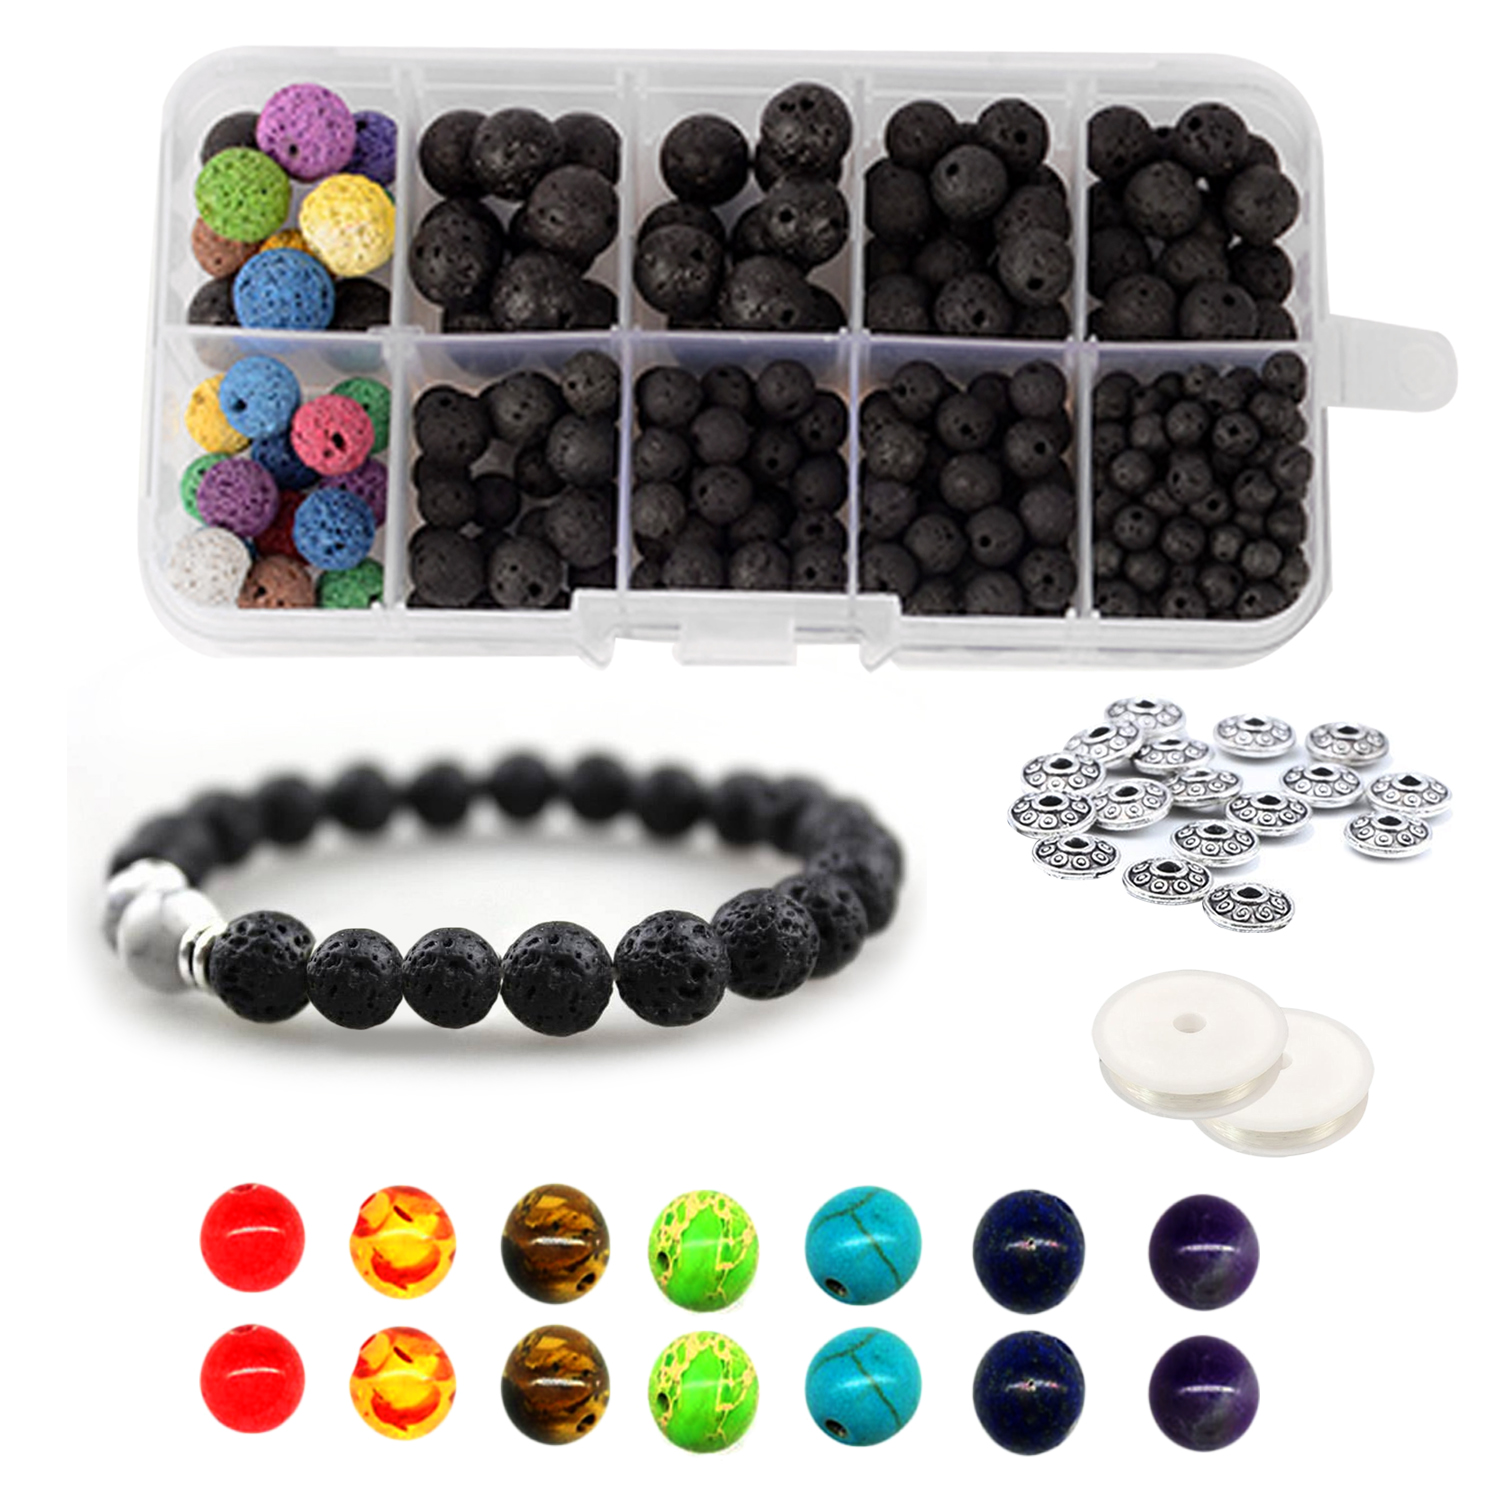 339pcs 8mm Chakra Beads Lava Rock Stone Volcanic Loose Bead Set With 2 Roll Crystal String For DIY Bead Bracelet Necklace Making